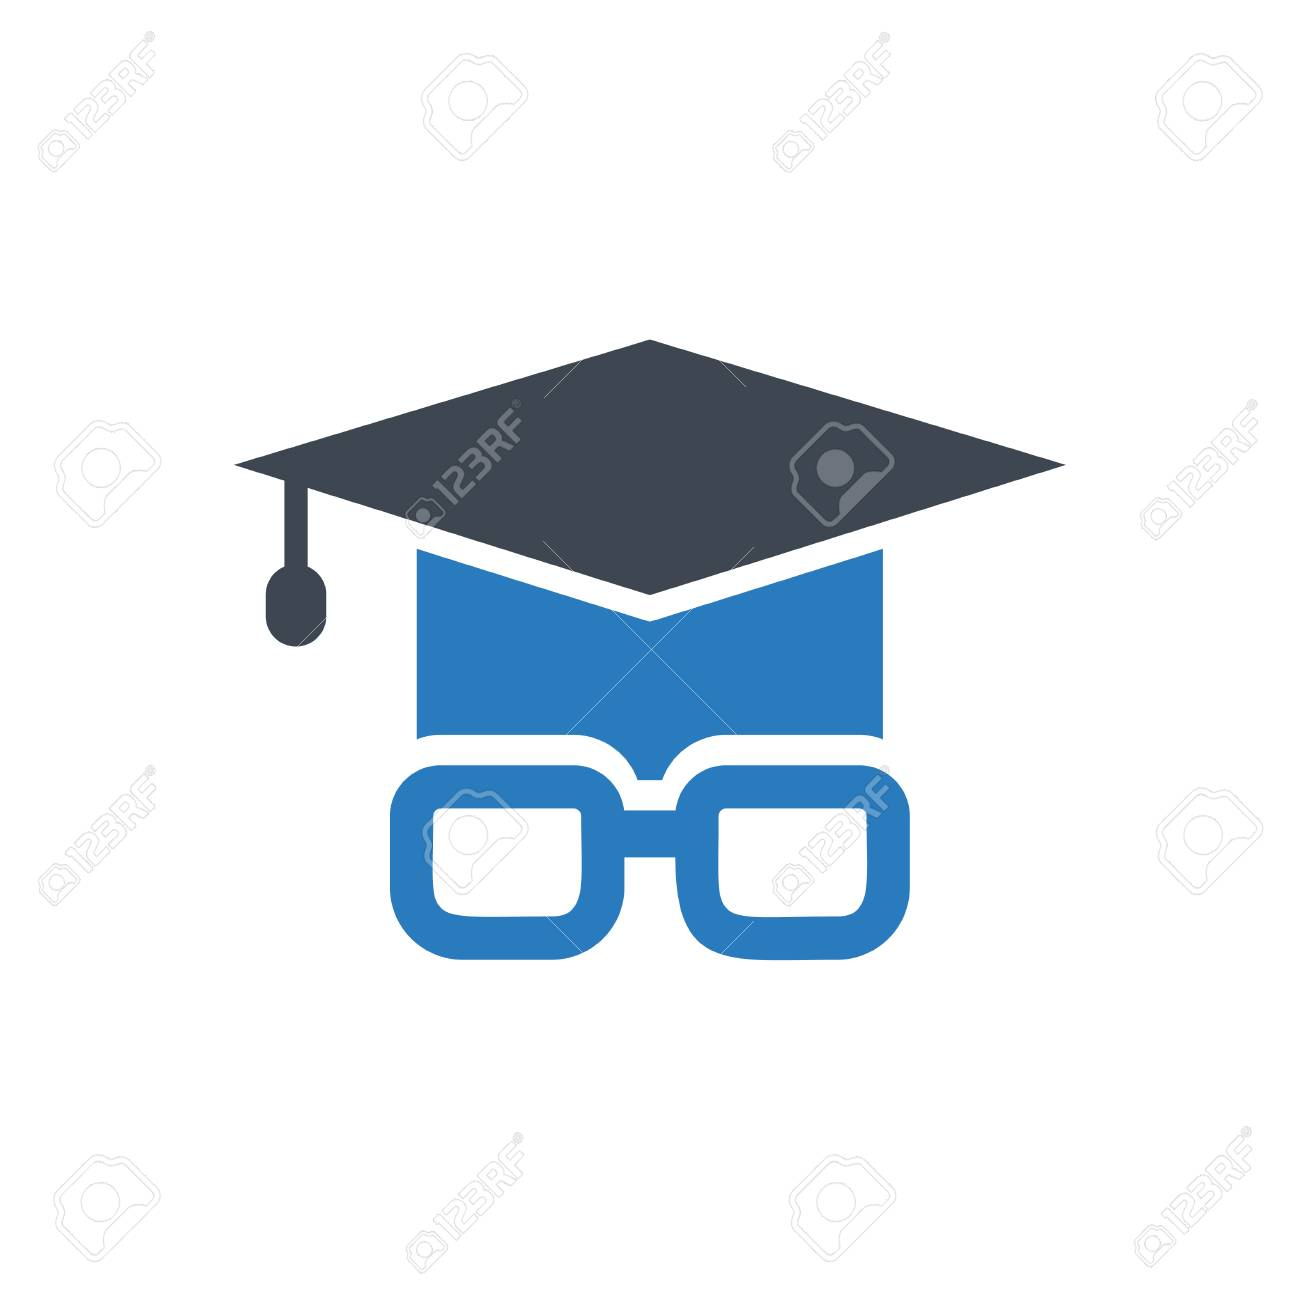 25d9e6fbbb94 Icon graduation cap and glasses - the concept of education vector blue  Stock Vector - 110117977